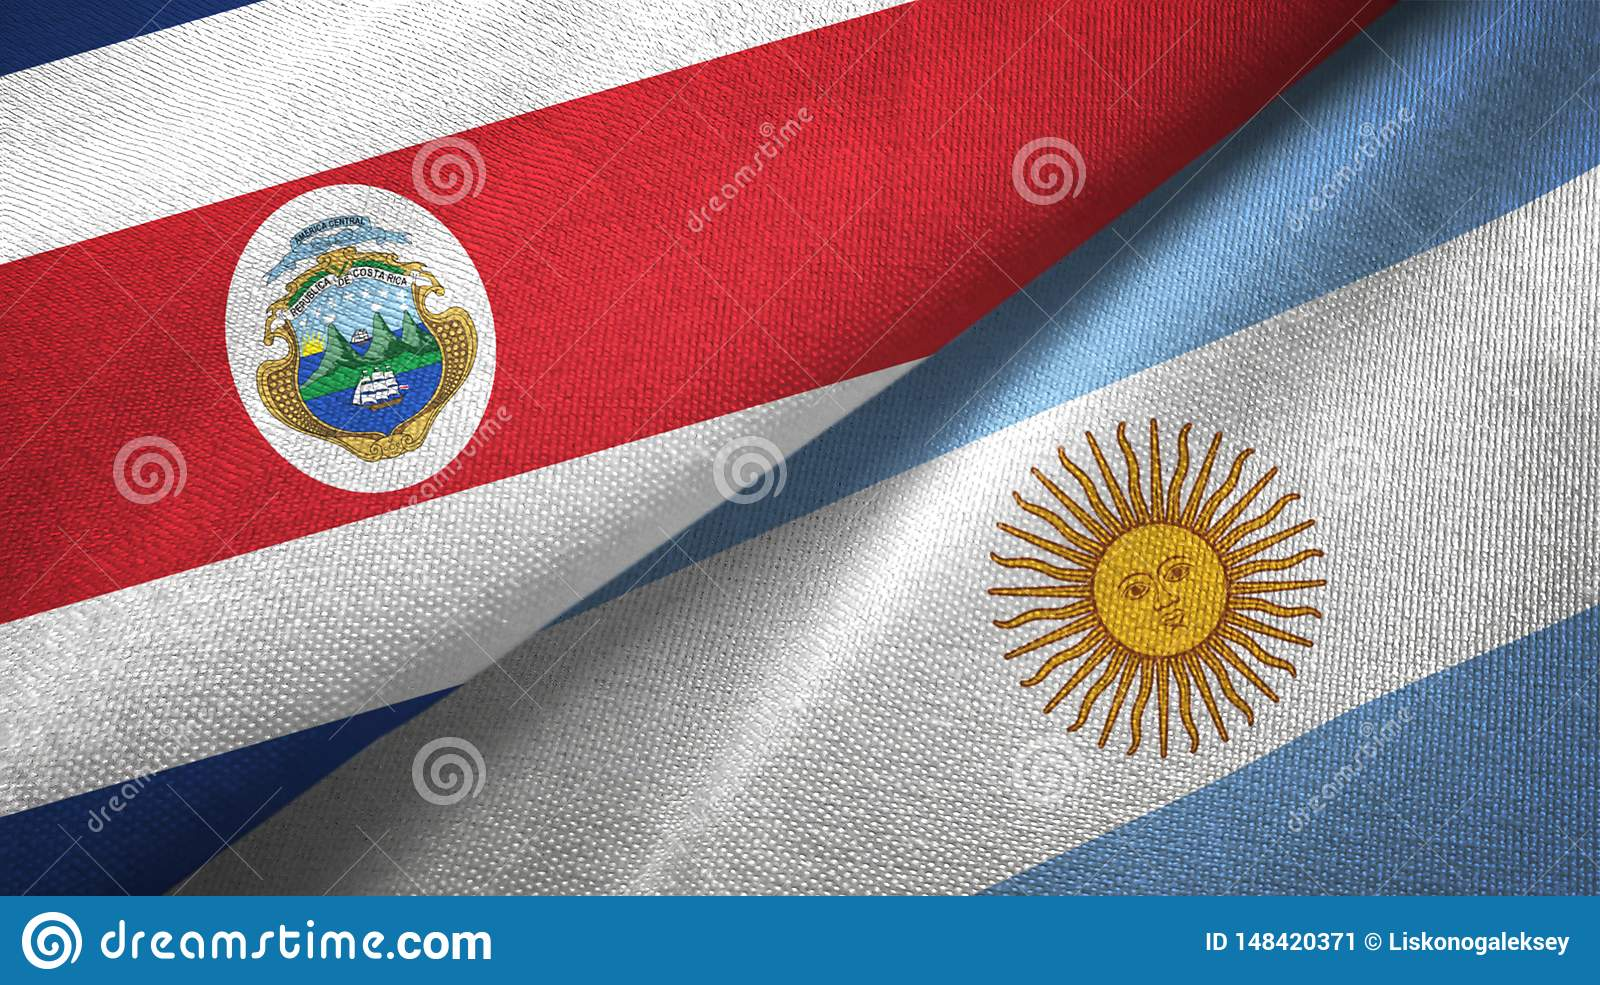 Costa Rica and Argentina two flags textile cloth, fabric texture